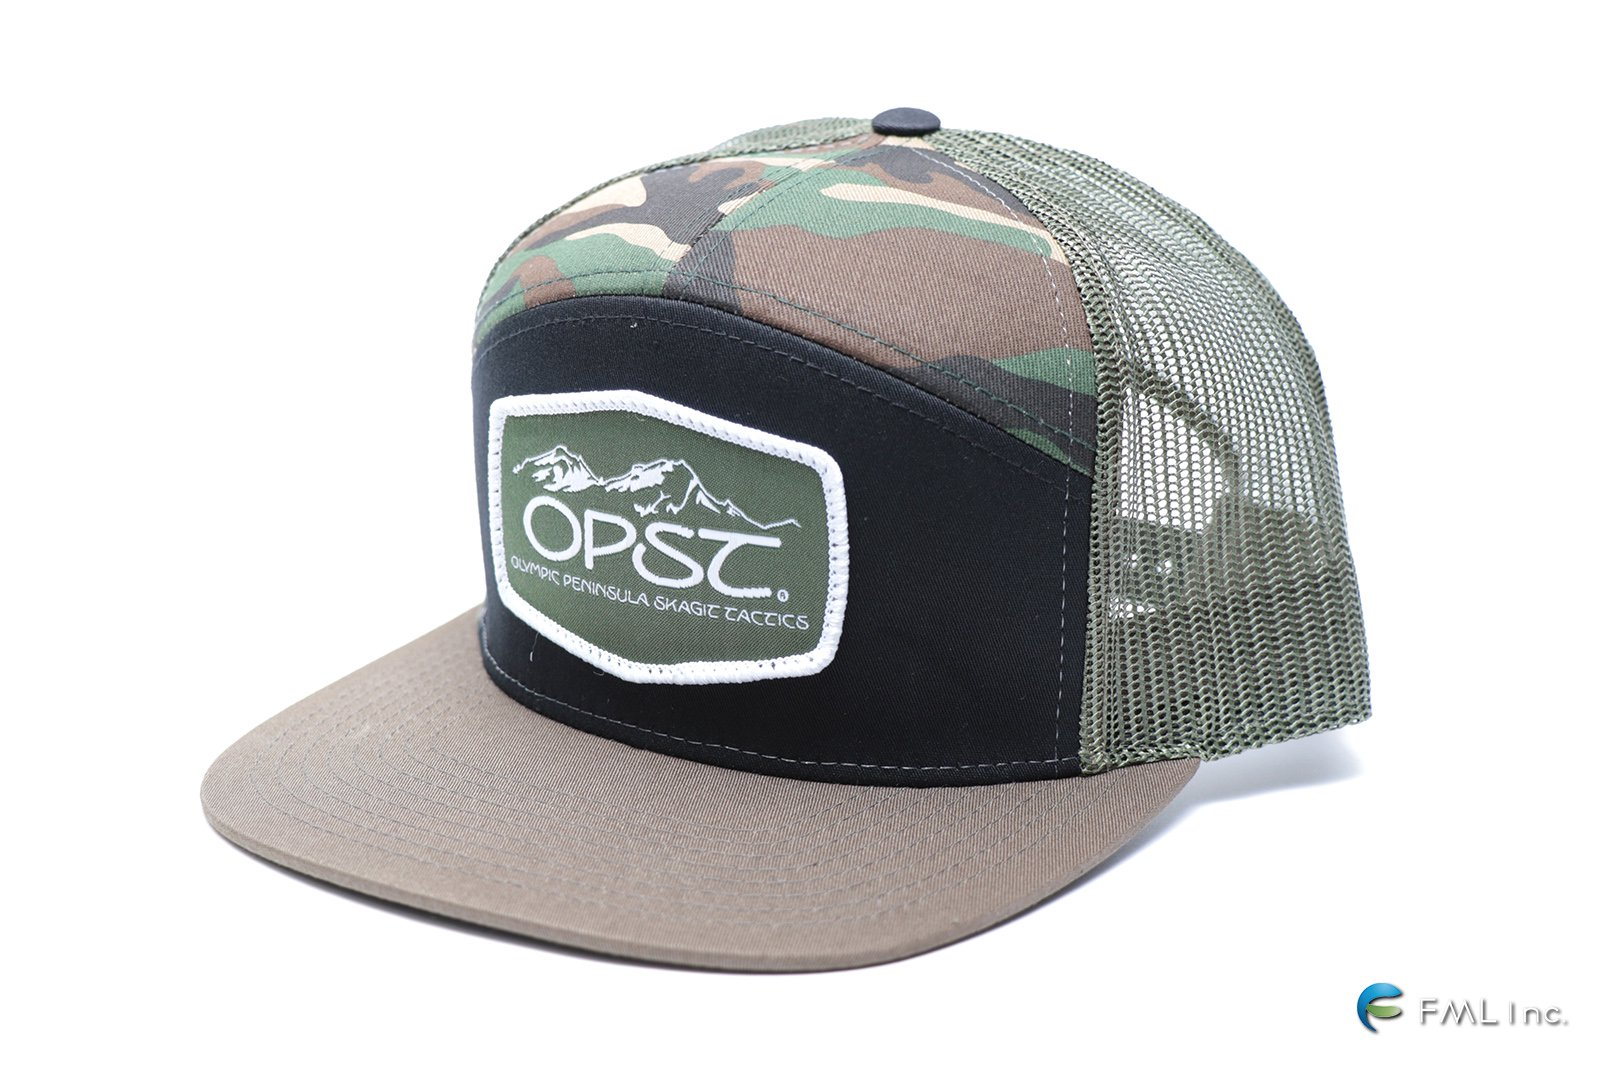 <img class='new_mark_img1' src='https://img.shop-pro.jp/img/new/icons5.gif' style='border:none;display:inline;margin:0px;padding:0px;width:auto;' />OPST 7 Panel Camo Trucker Hat -Snapback